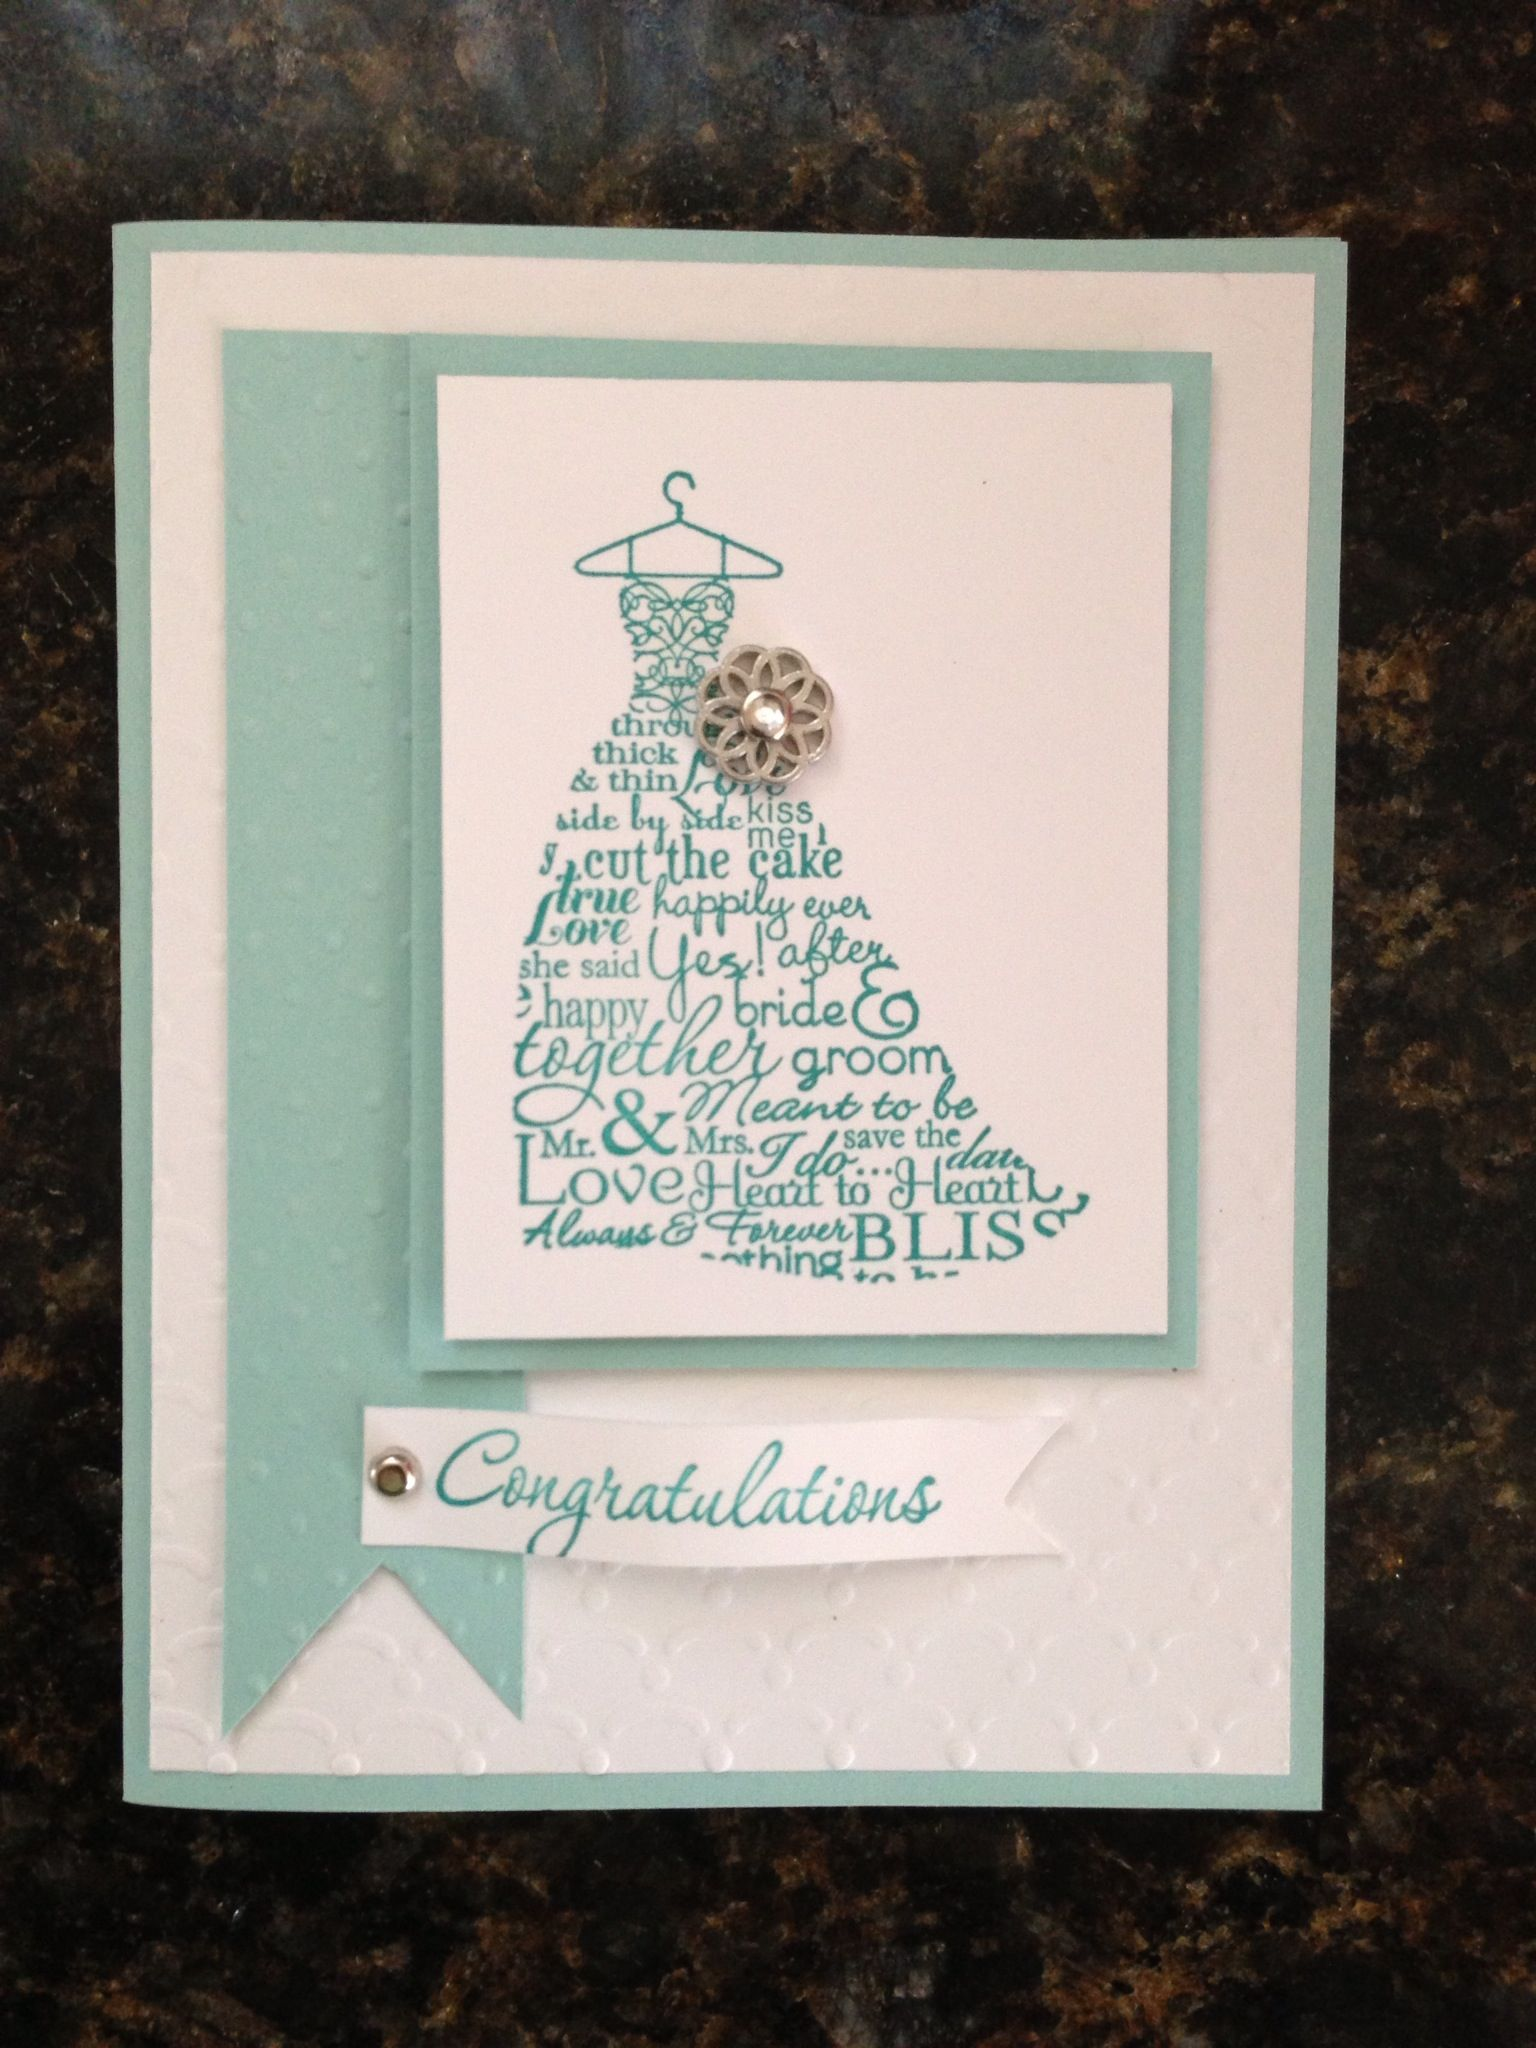 Stampin up bridal shower card diy crafts pinterest bridal stampin up bridal shower card kristyandbryce Image collections